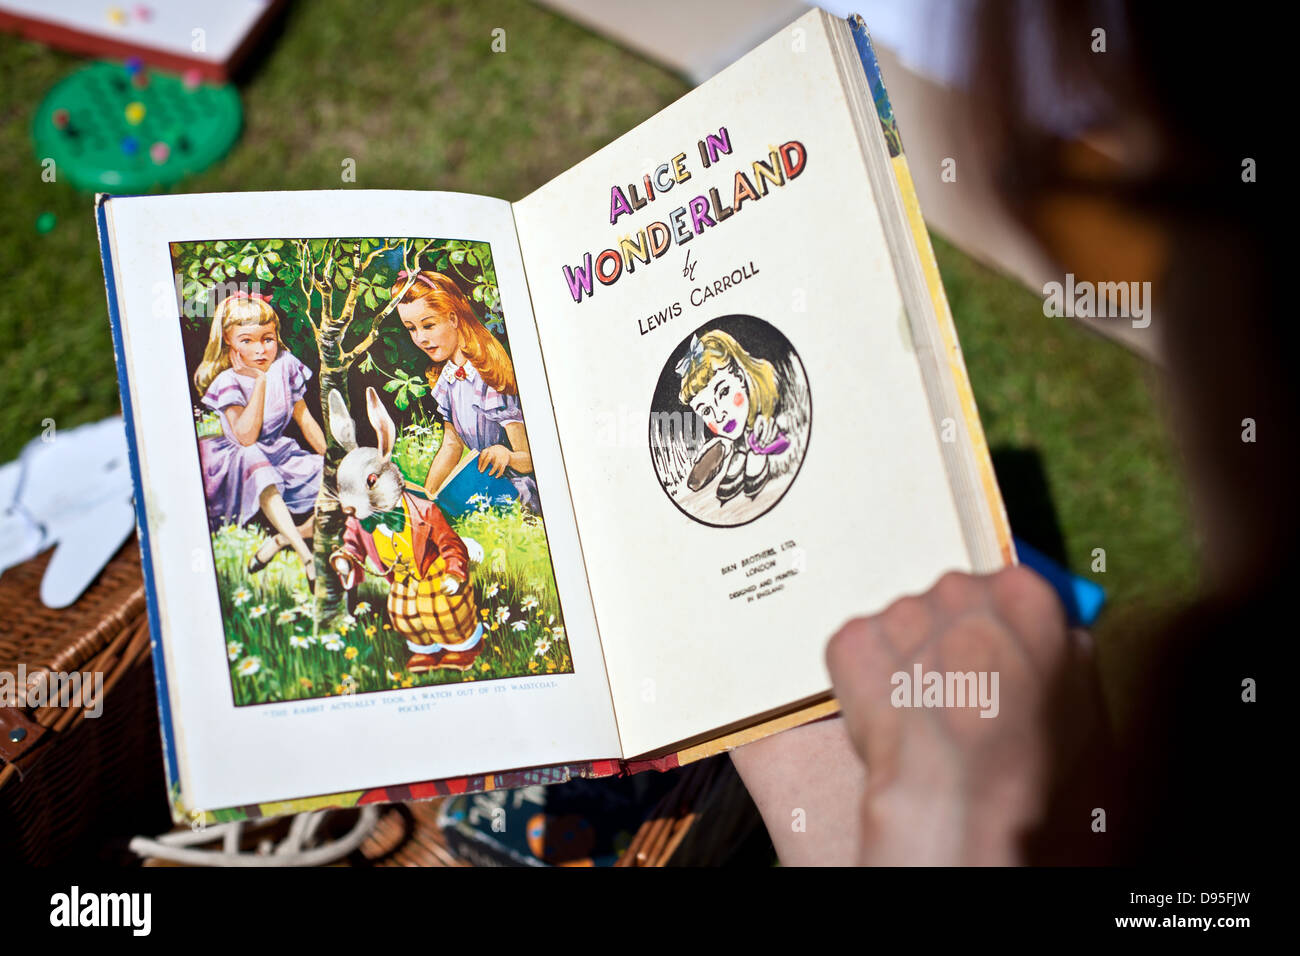 Old edition of Alice in Wonderland by Lewis Carroll - Stock Image